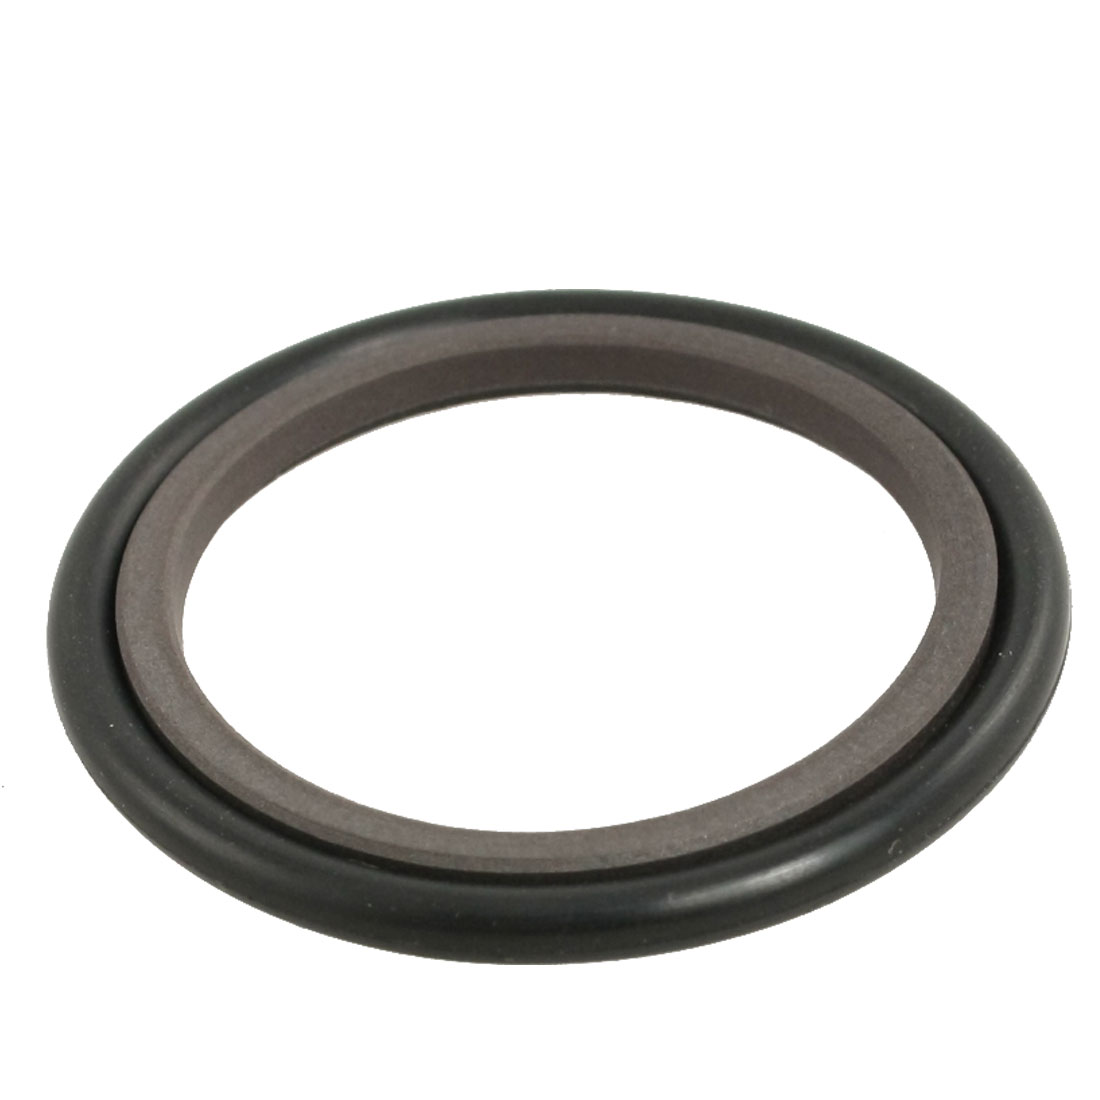 Hydraulic Piston 36 x 47 x 4.2mm Shaft Step Sealing Seal Ring